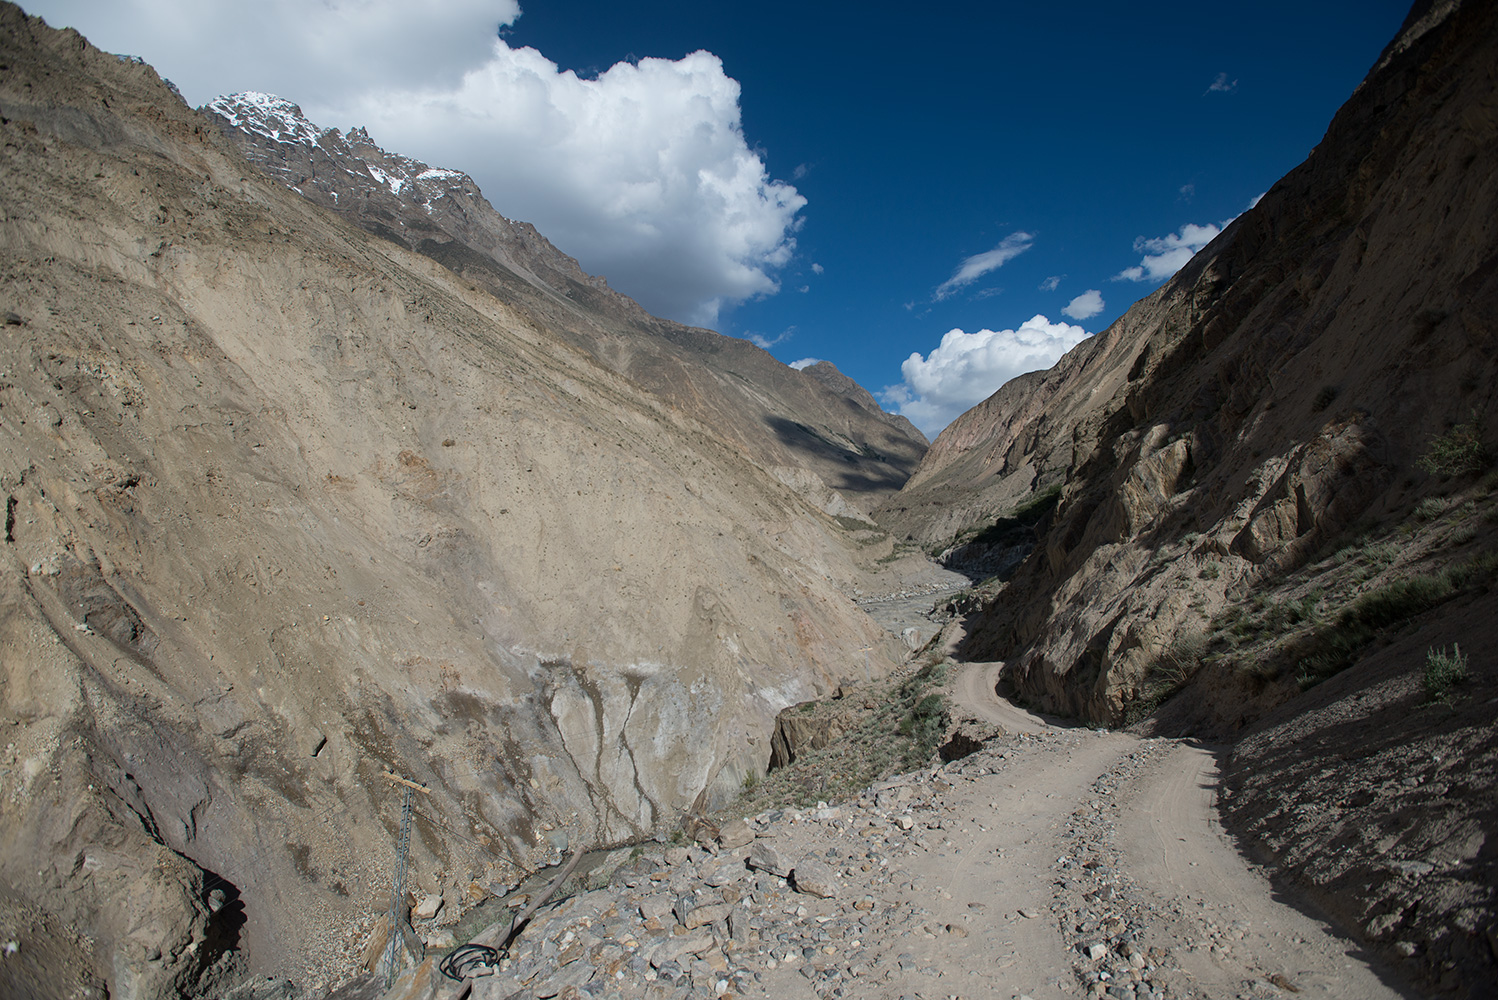 The narrow jeep track through the Braldu gorge